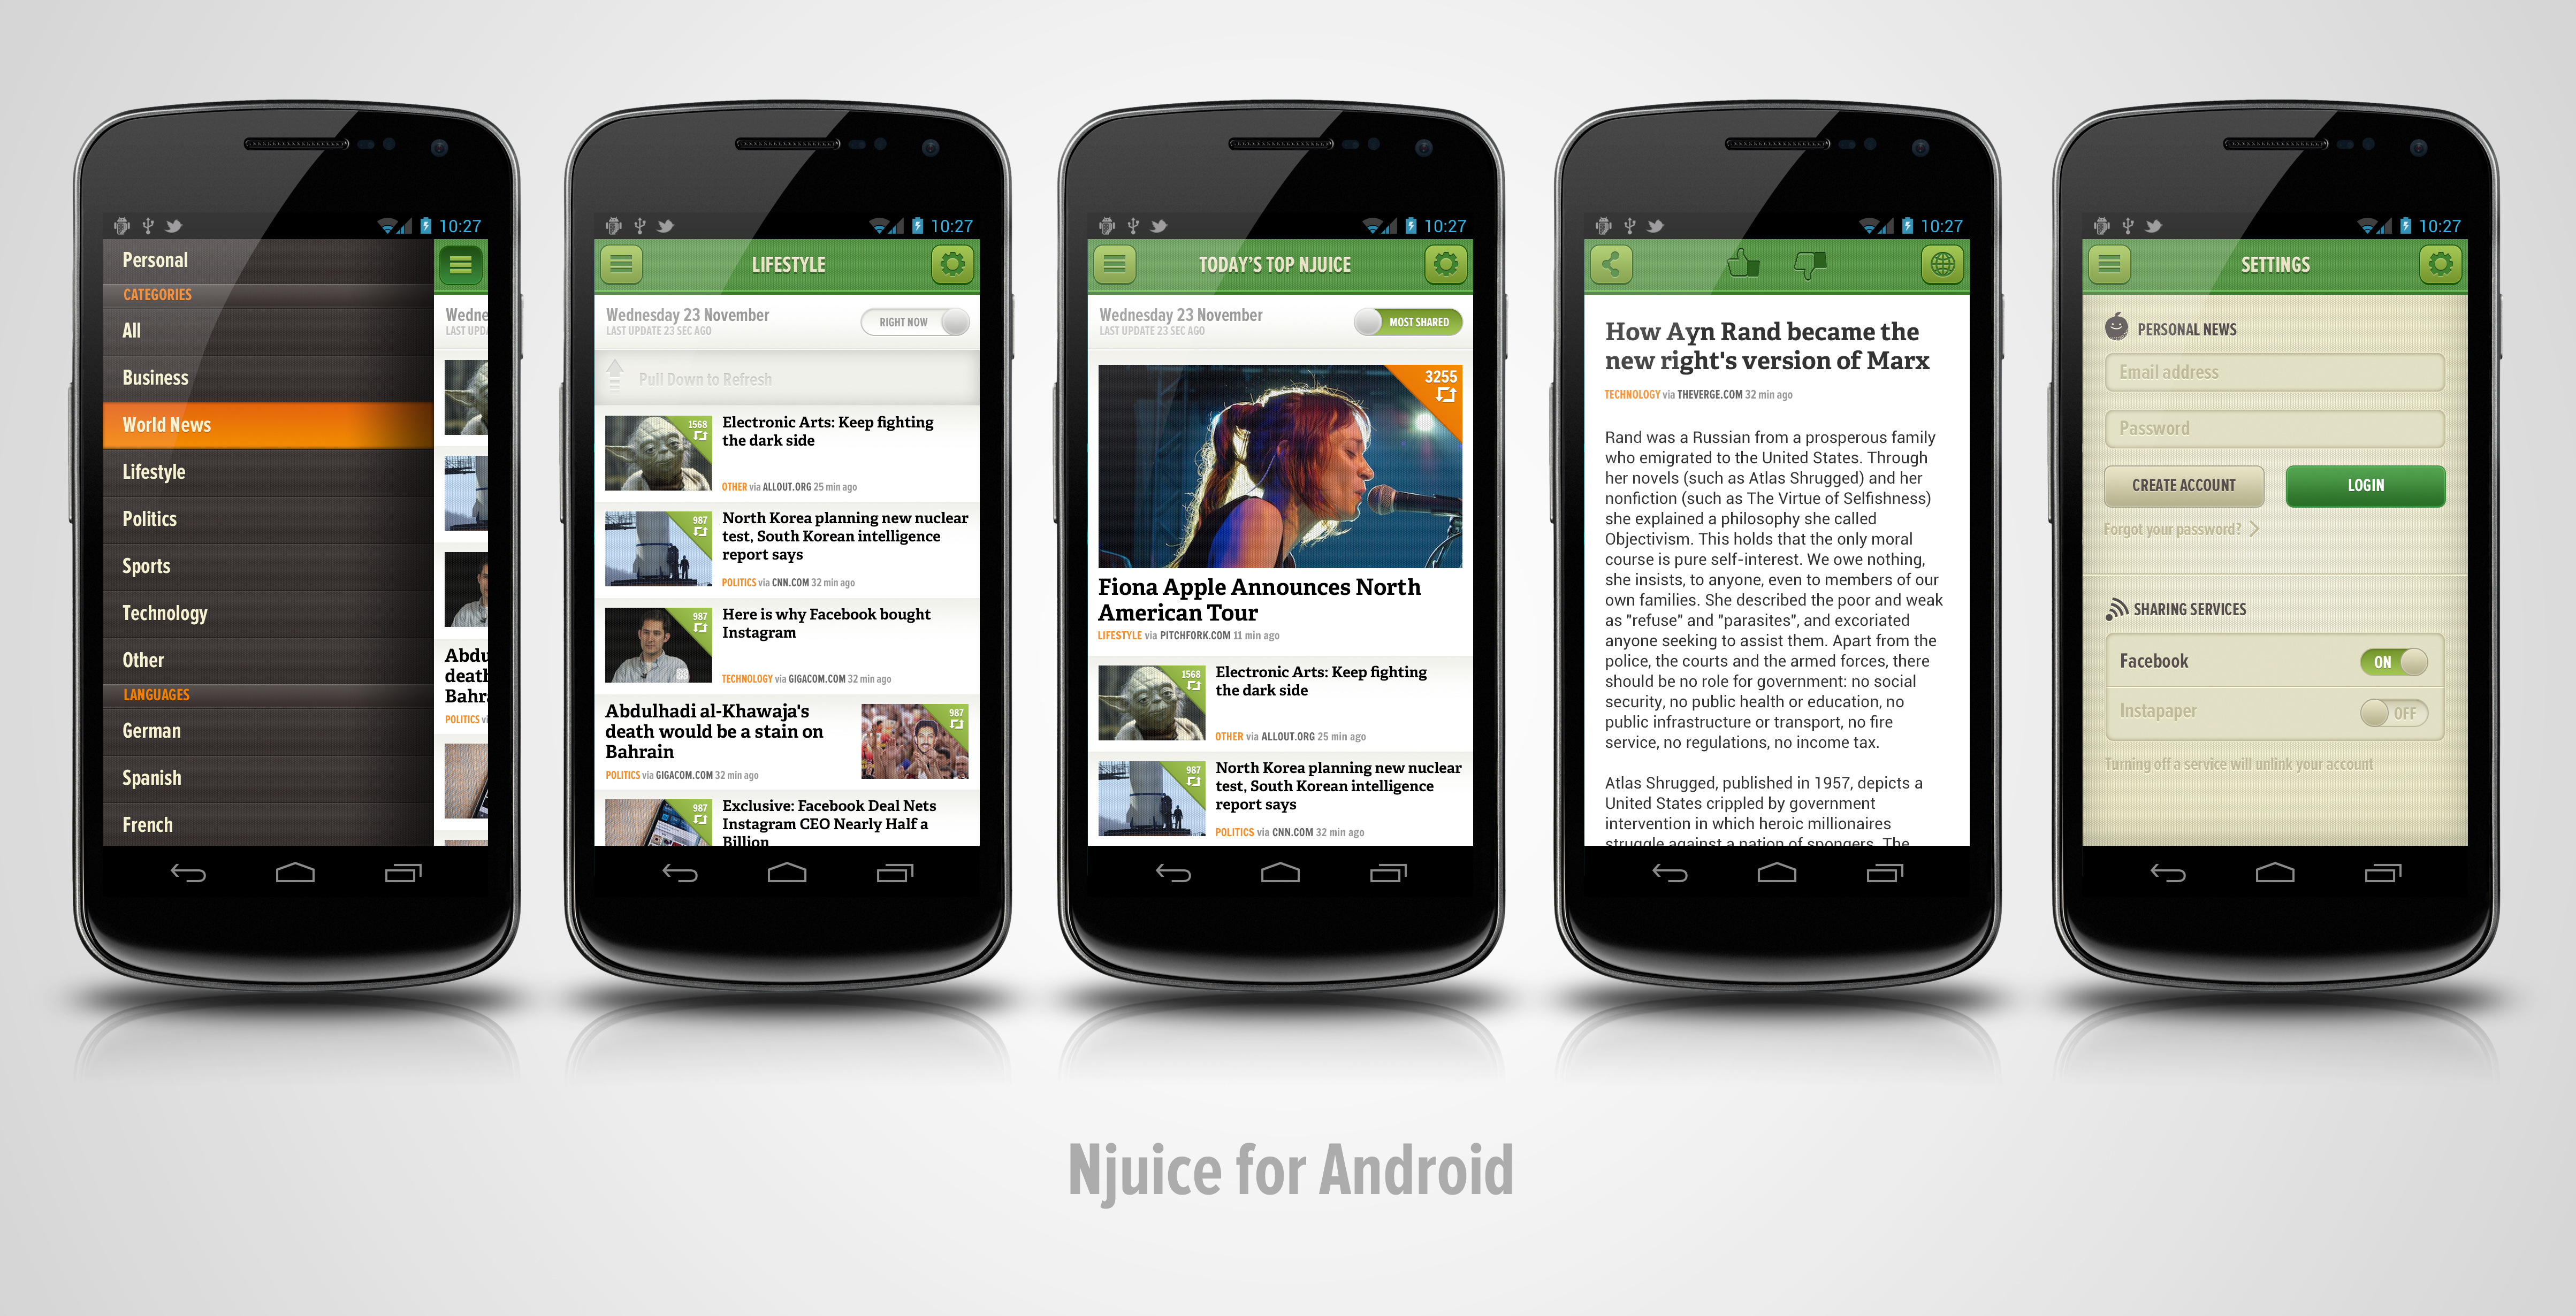 Njuice---overview---galaxy-nexus